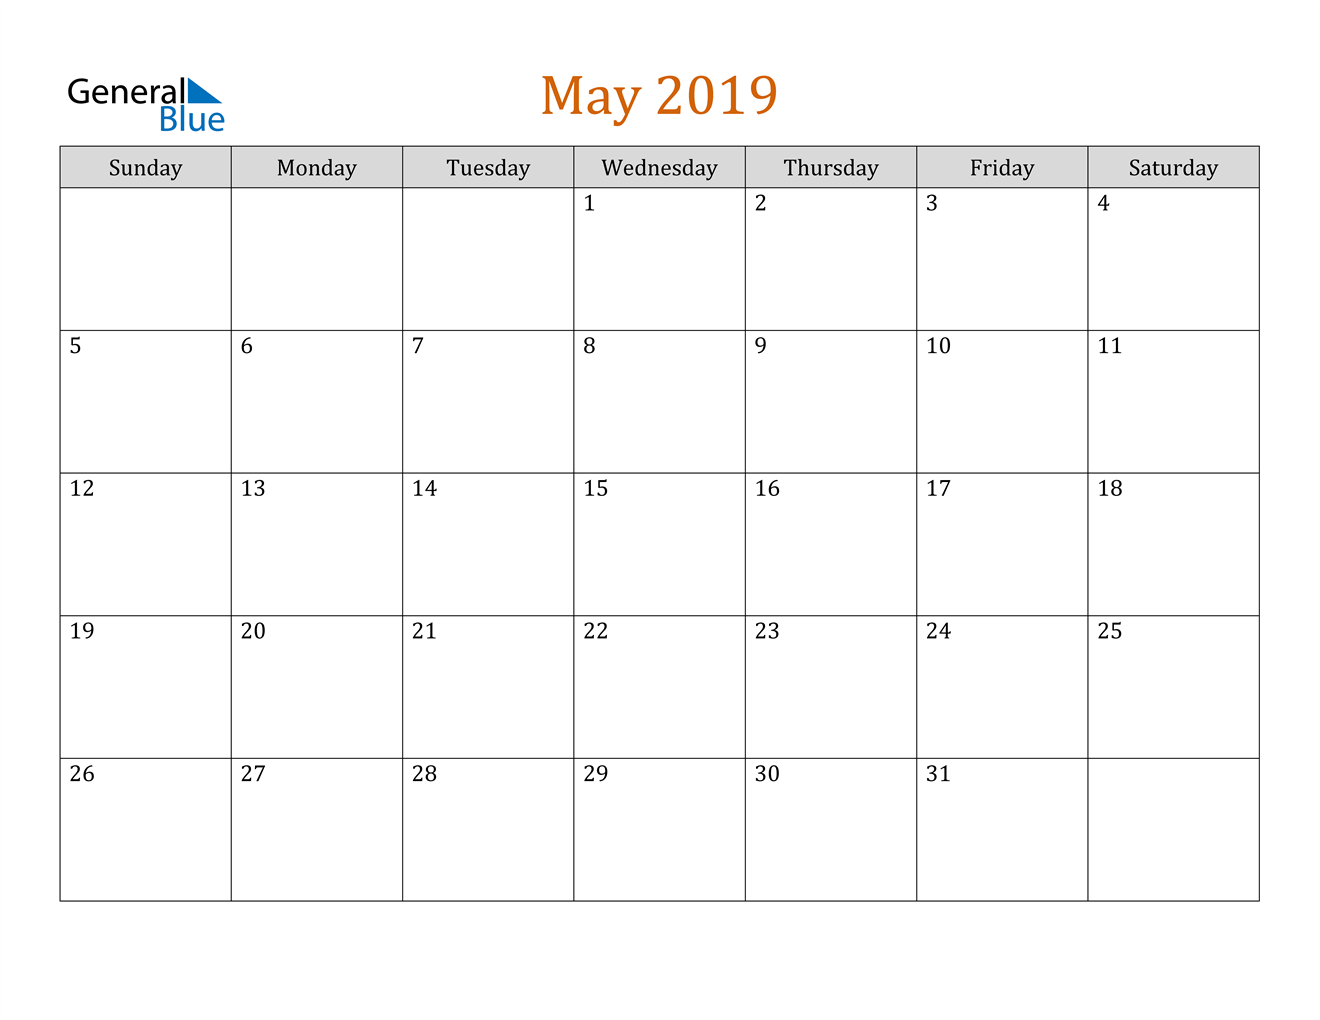 Image of May 2019 Contemporary Orange PDF, Word and Excel Calendar Calendar